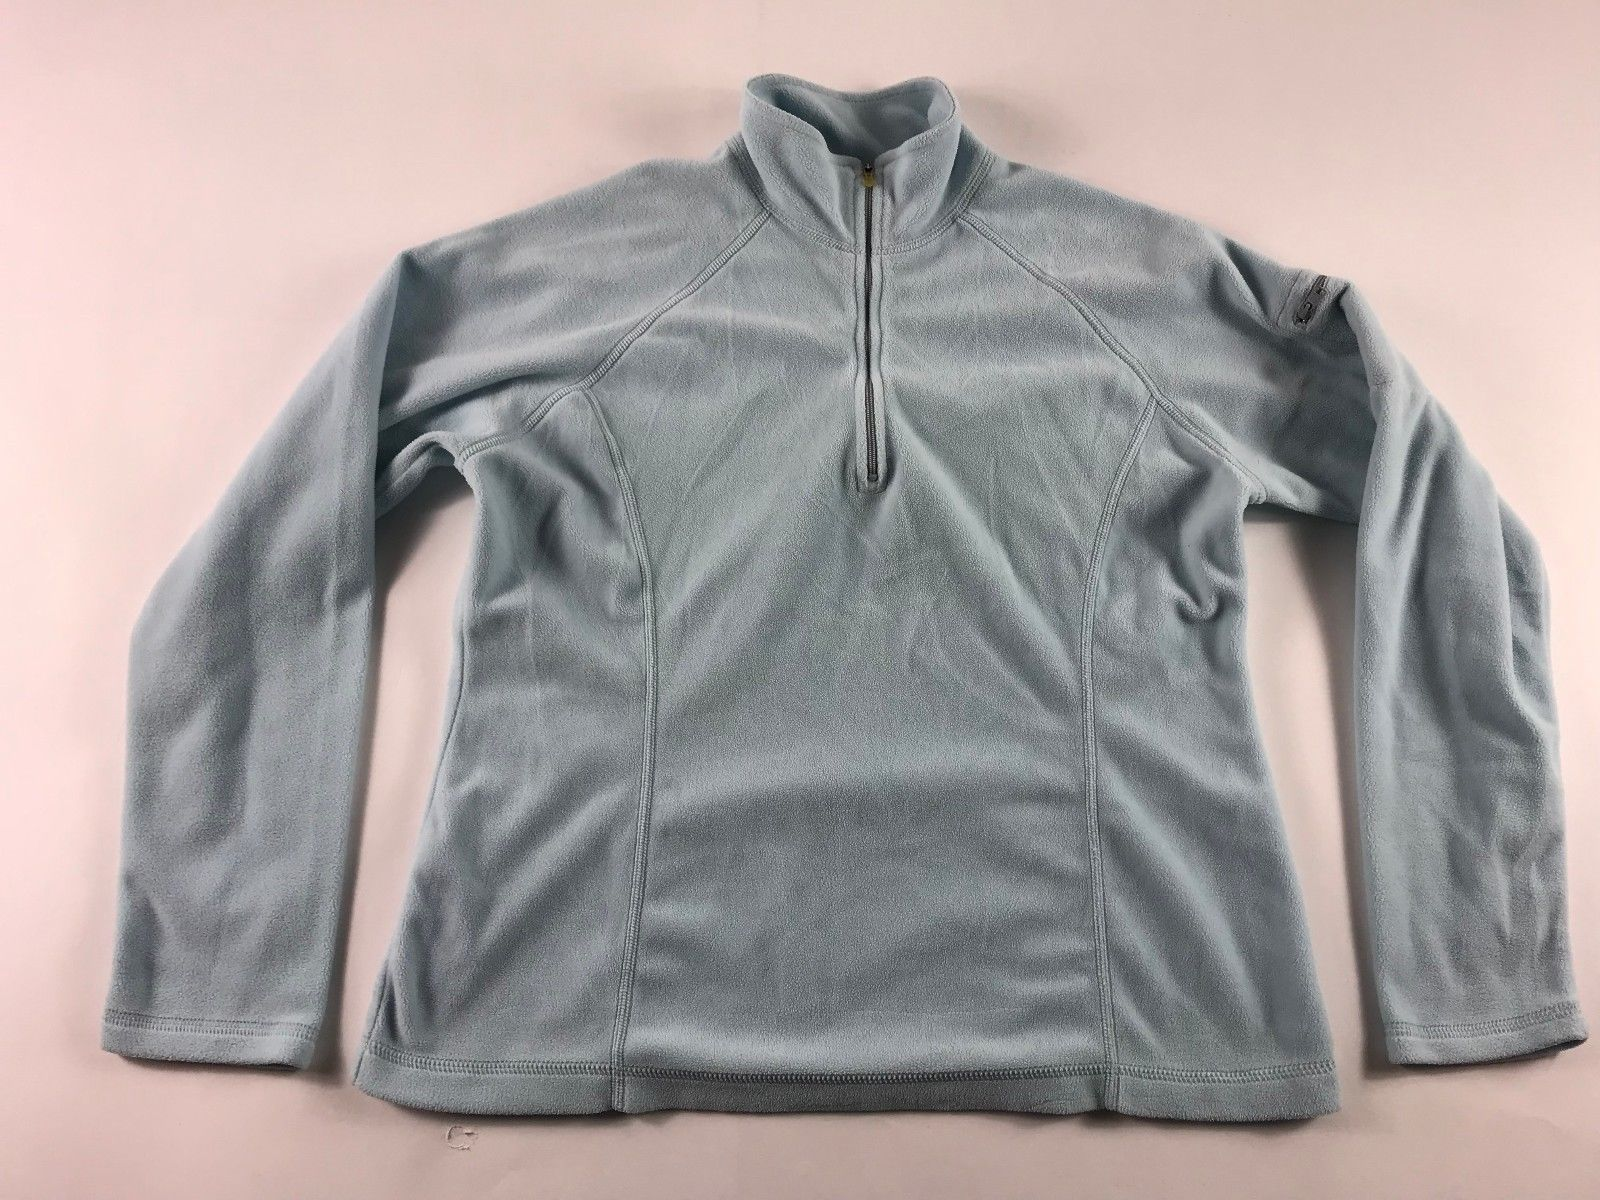 Avings ll bean womenus light blue zip up fleece jacket size s